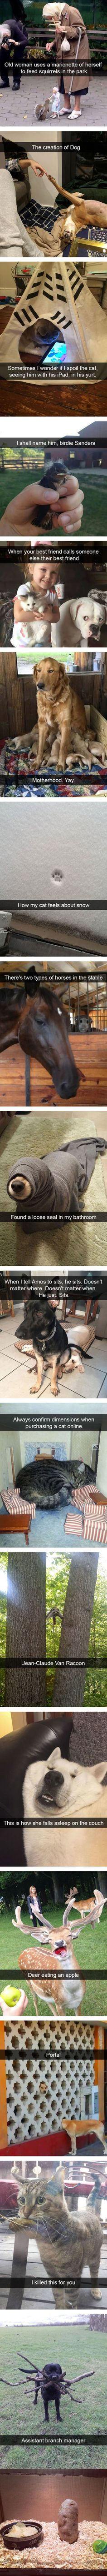 Animal Snapchats Guaranteed To Make You Laugh